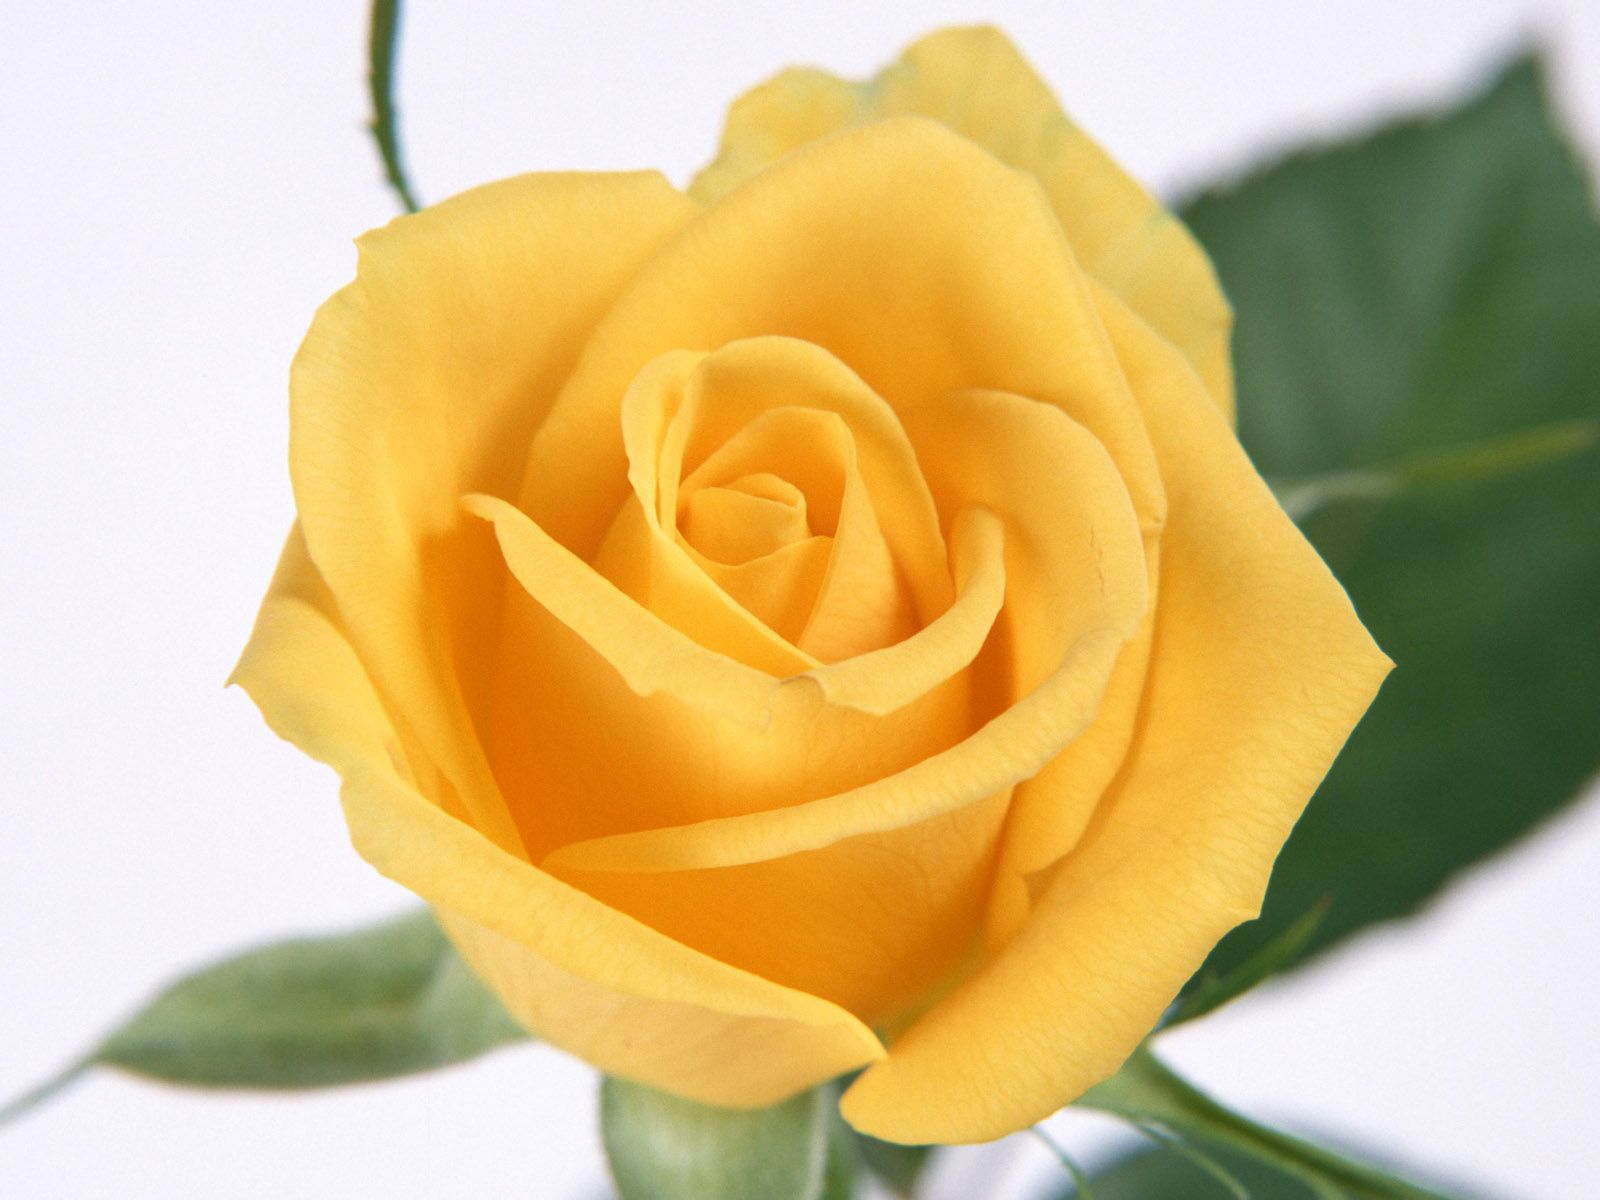 Desktop wallpaper arrangement free download wallpaper out of all the flowers roses are the most beautiful and most loved throughout the world here we have collected best roses in other beautiful colors izmirmasajfo